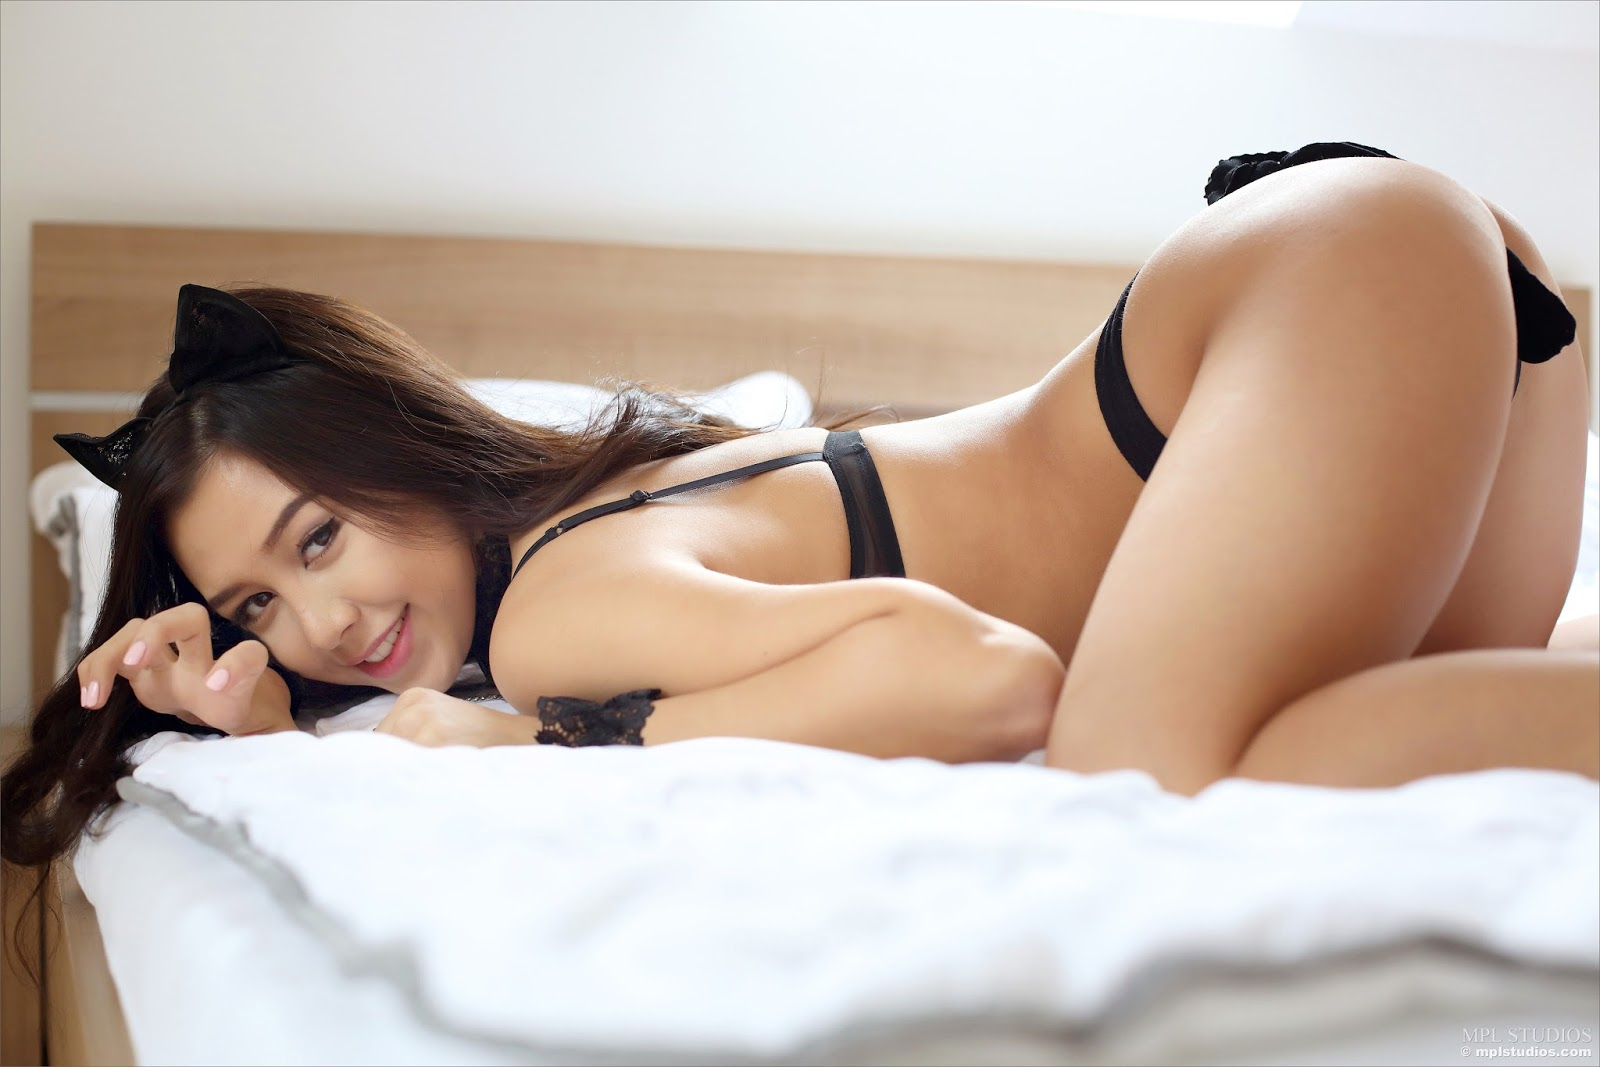 Play toy with escort girl singapore